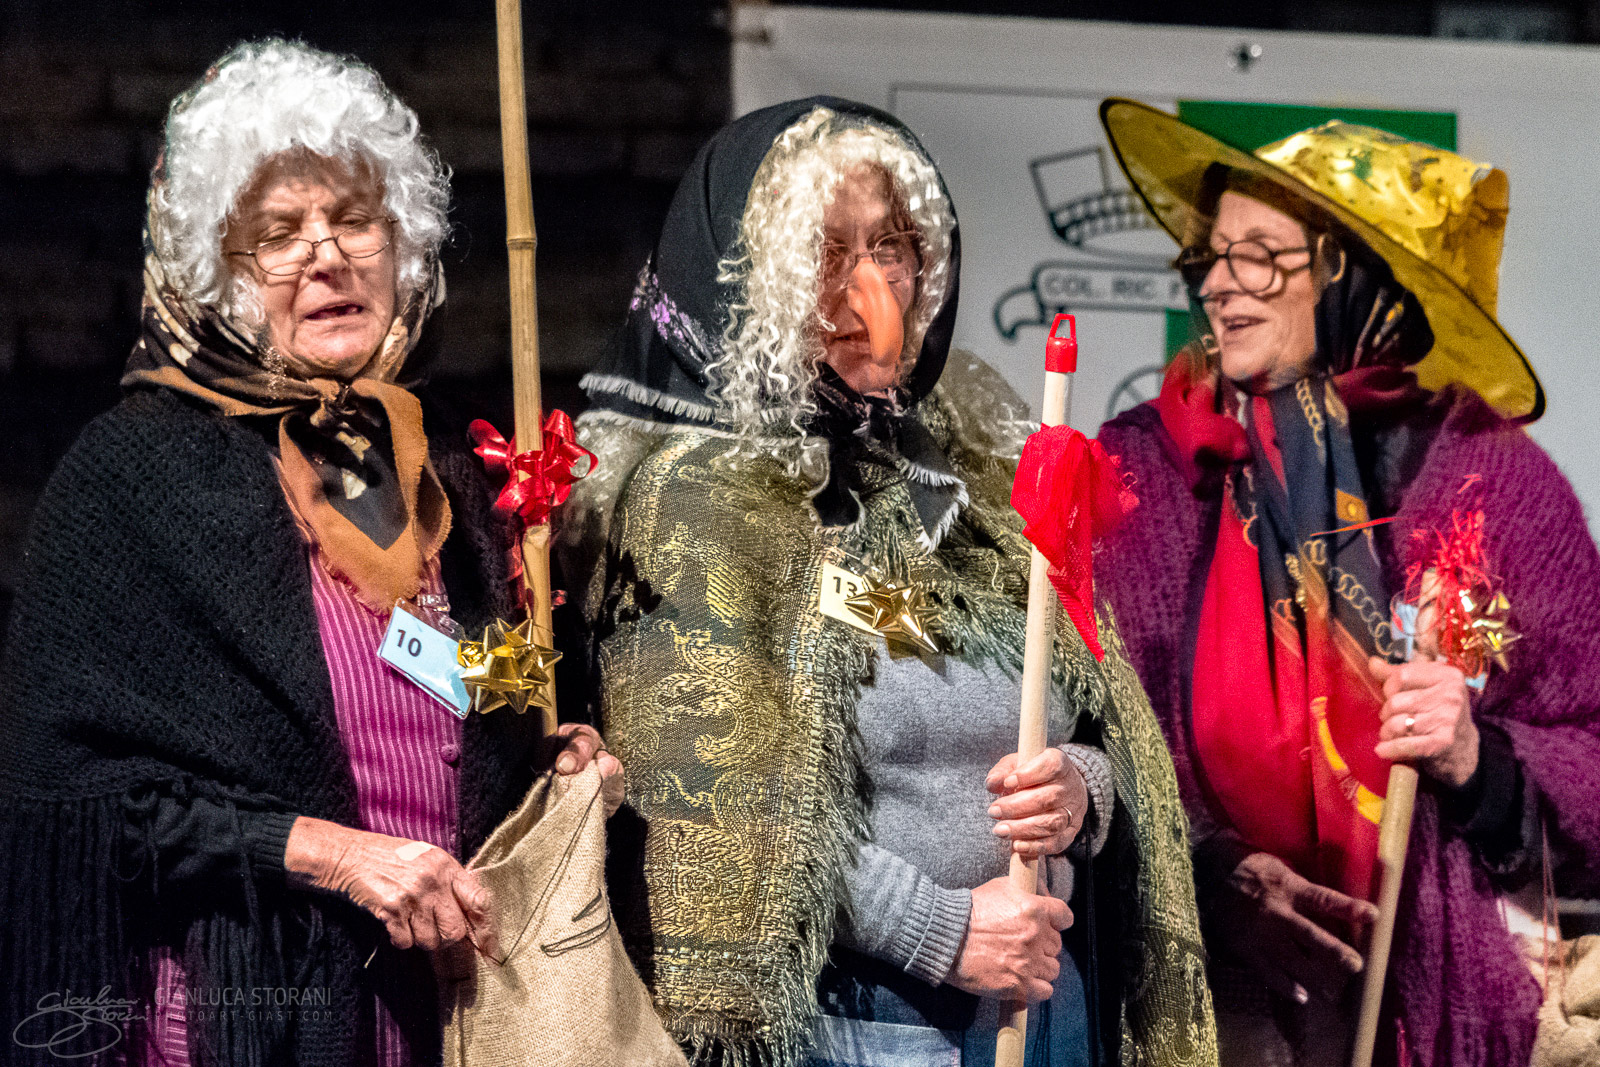 Festa della Befana 2018 di Macerata - Gianluca Storani Photo Art (ID: 4-7595)